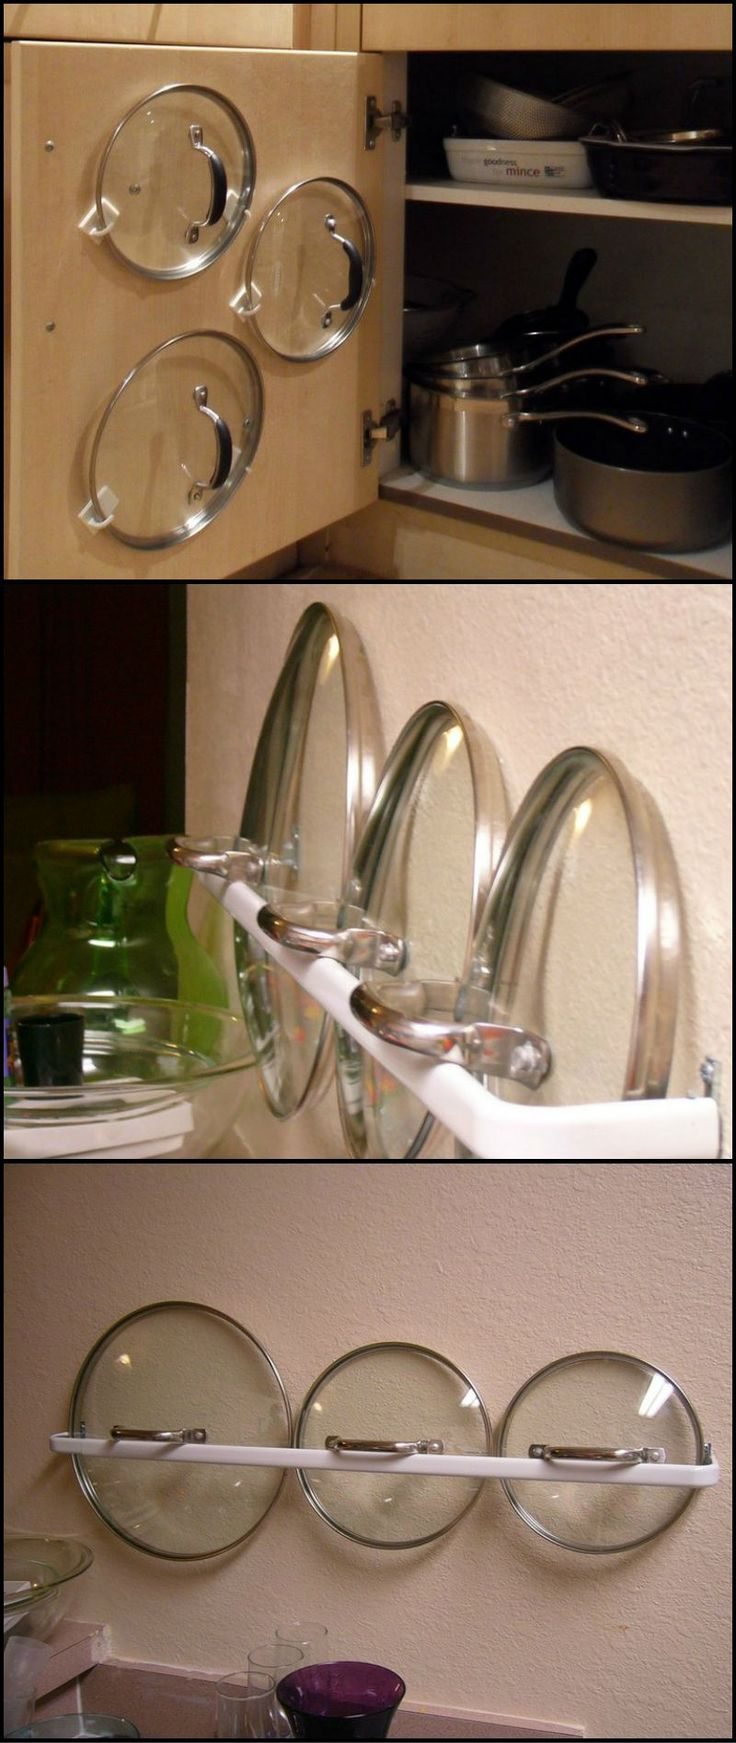 How To Make Your Own Pot Lid Organizer  http://theownerbuildernetwork.co/3vnc  Don't you just hate it when you can't find the right lid for a pot? Whether it's because you don't have a proper storage solution for pot lids, or because your kitchen is just disorganized, here are a couple of simple, inexpensive solutions!